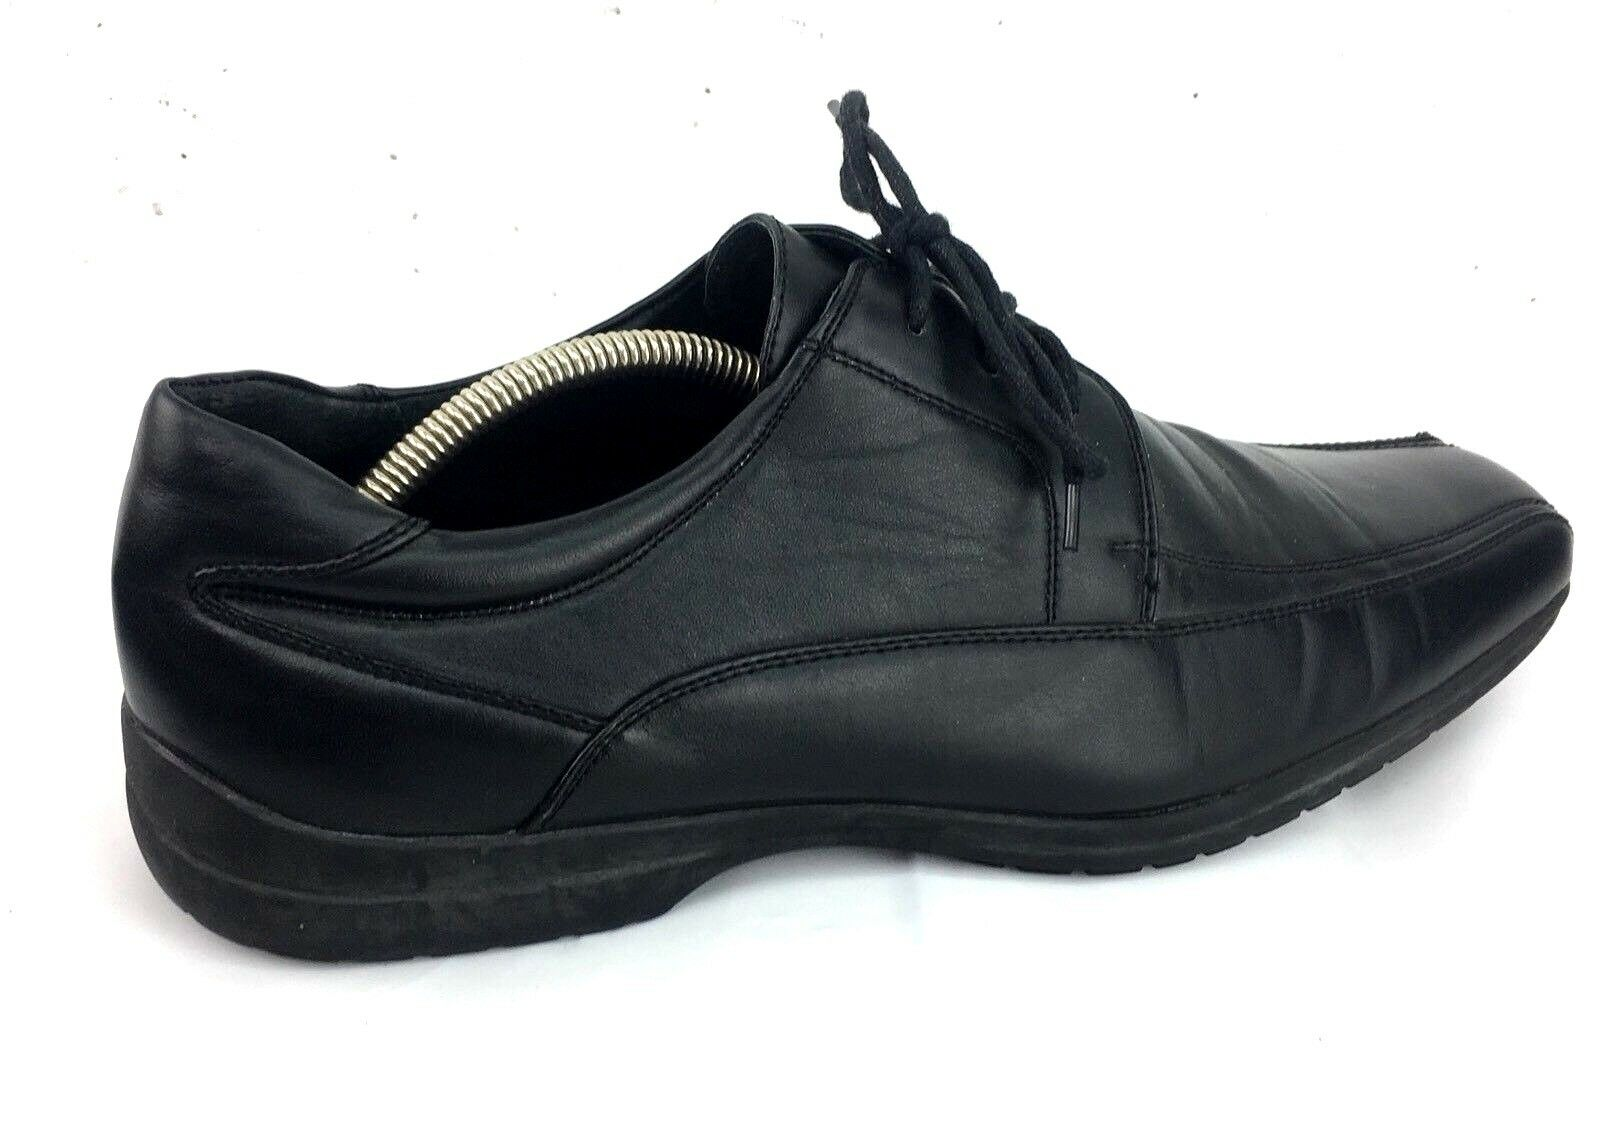 Men's Apt 9 Black Leather Lined Dress shoes 11M Career Oxfords Bicycle Toes